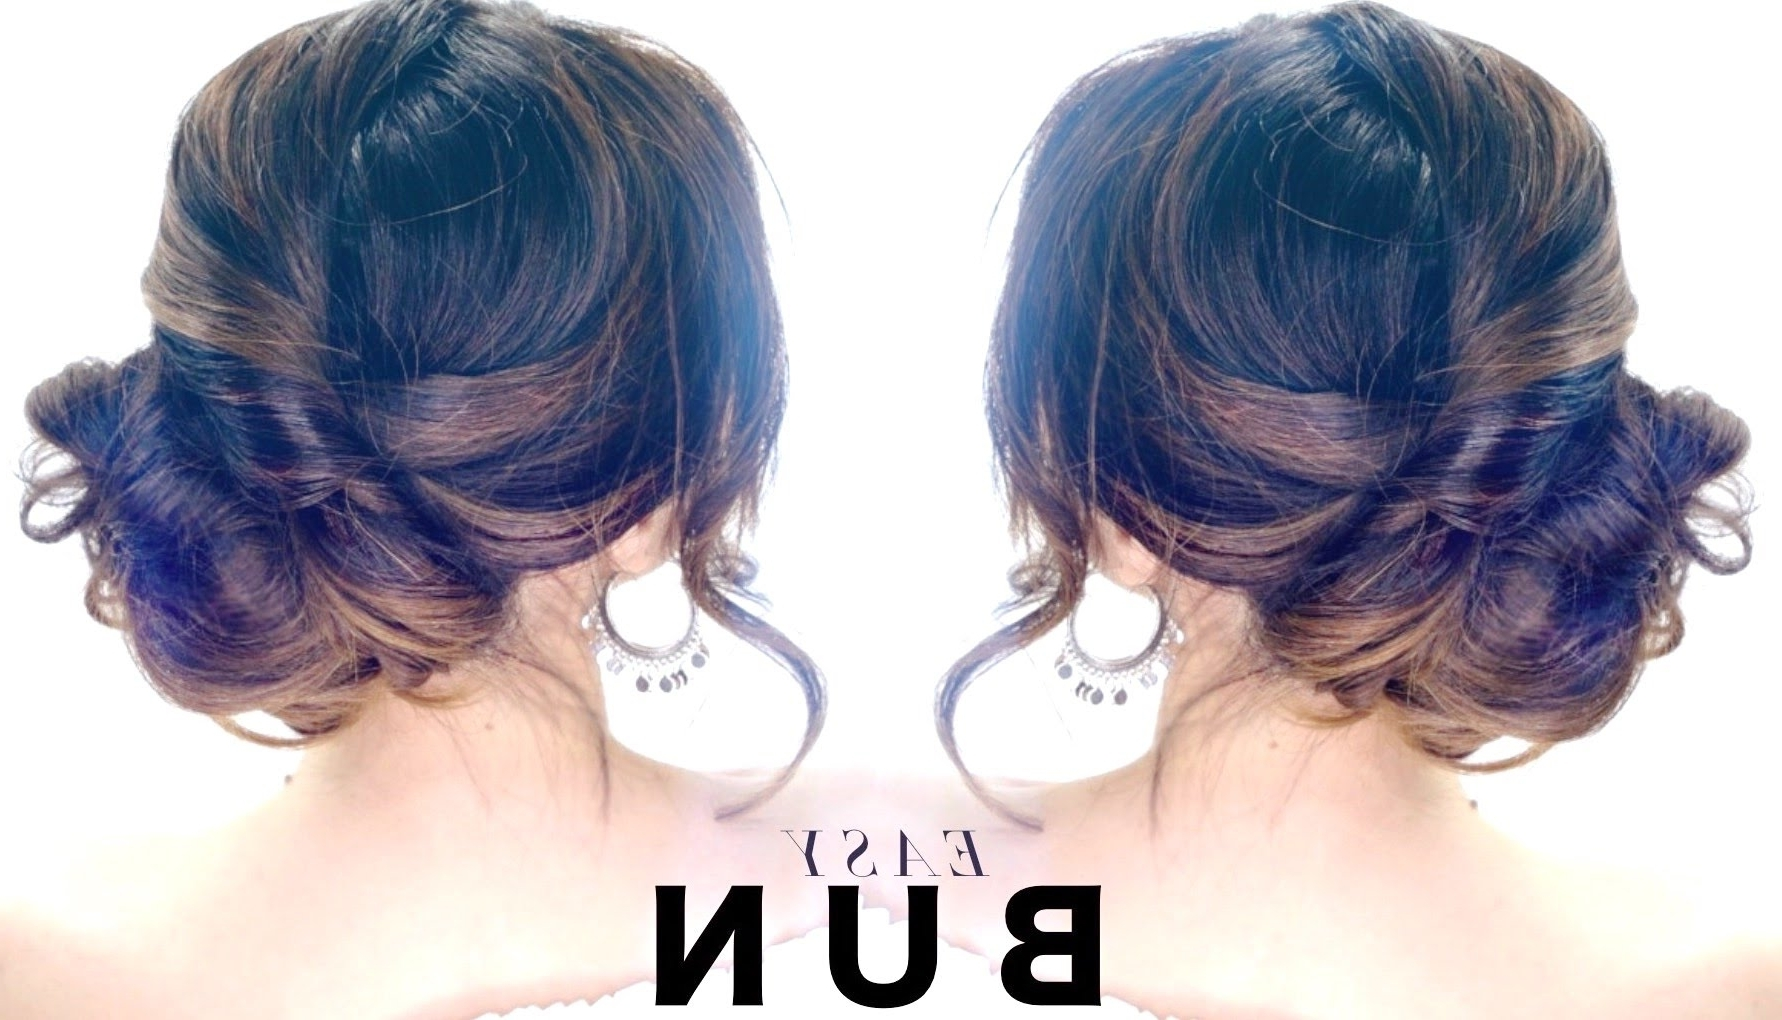 3 Minute Elegant Side Bun Hairstyle ☆ Easy Summer Updo Hairstyles For Fancy Updo Hairstyles For Long Hair (View 8 of 15)